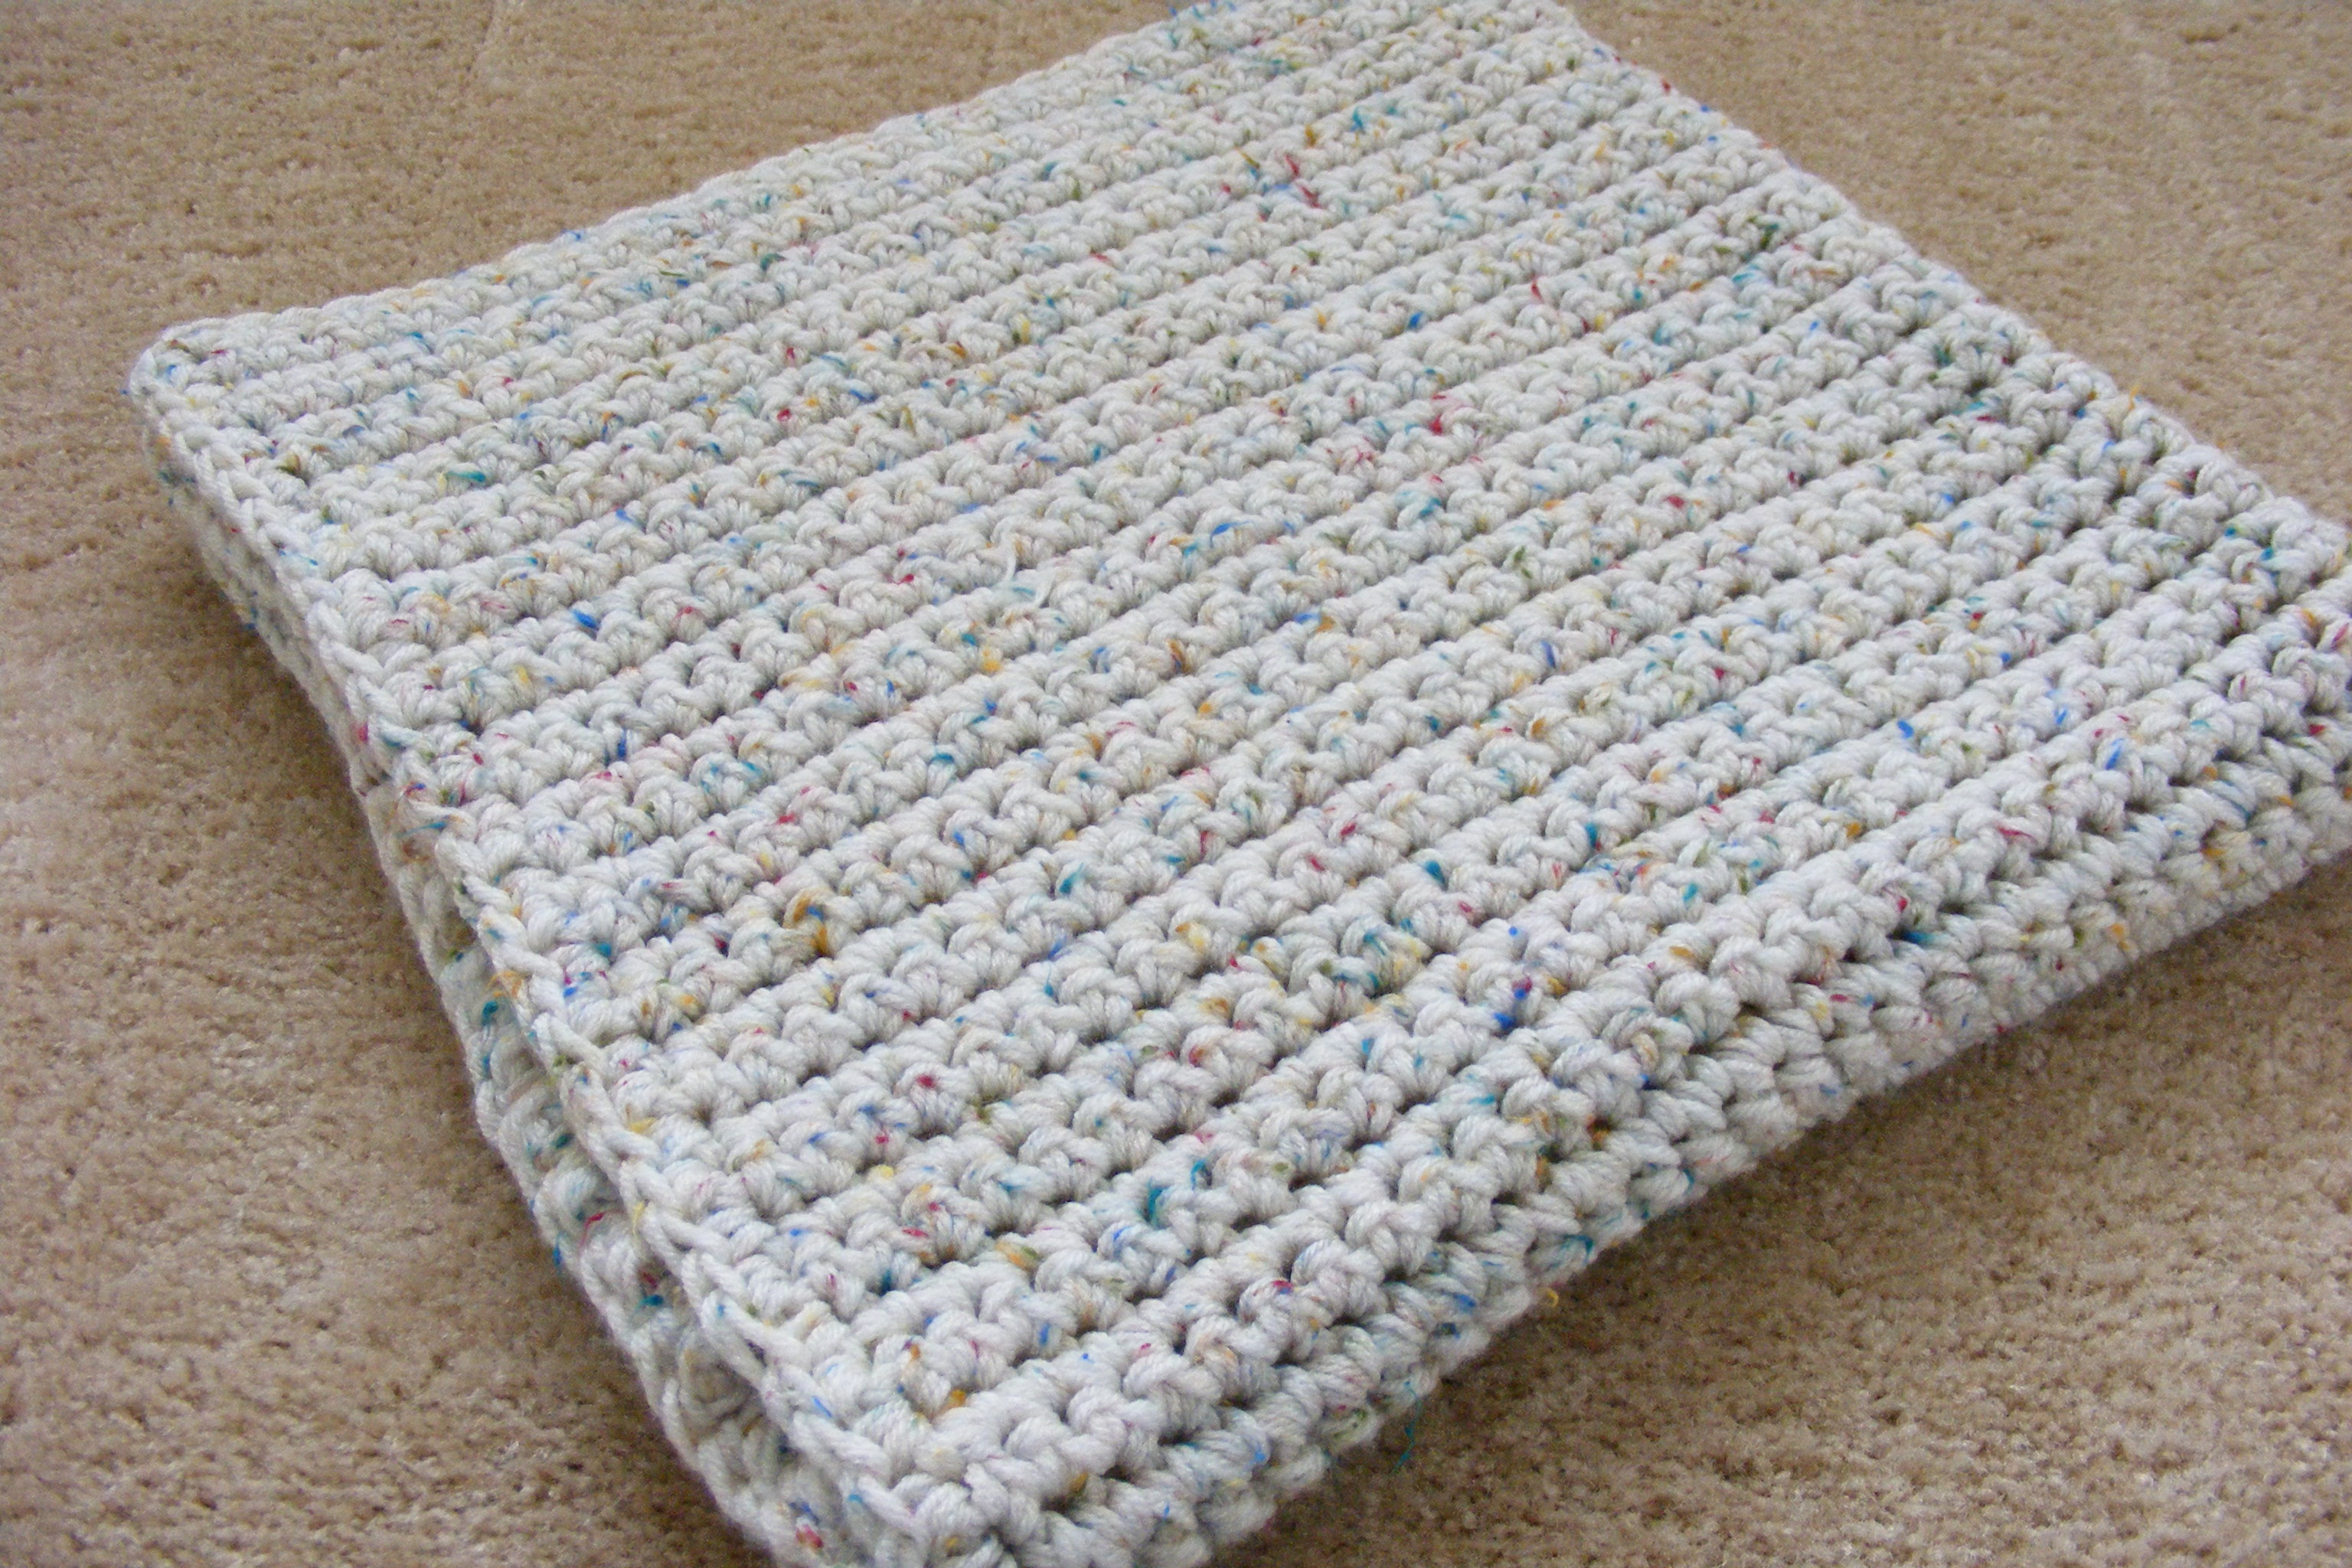 Crocheting Easy Baby Blanket : Single Crochet Baby Blanket GretchKals Yarny Adventures